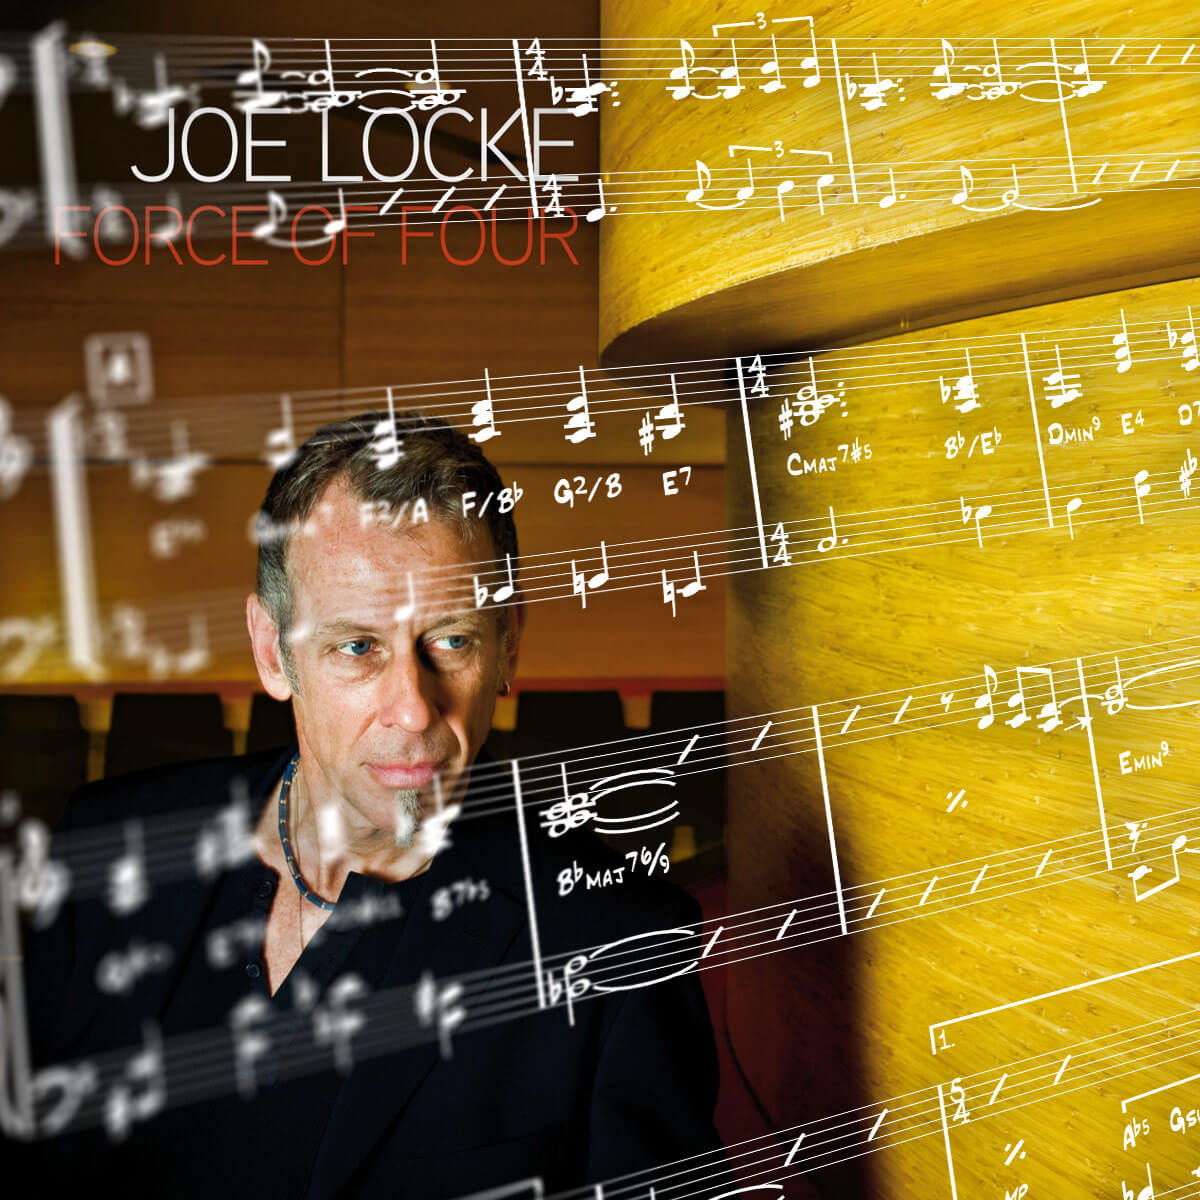 Joe Locke - Force Of Four sheet music